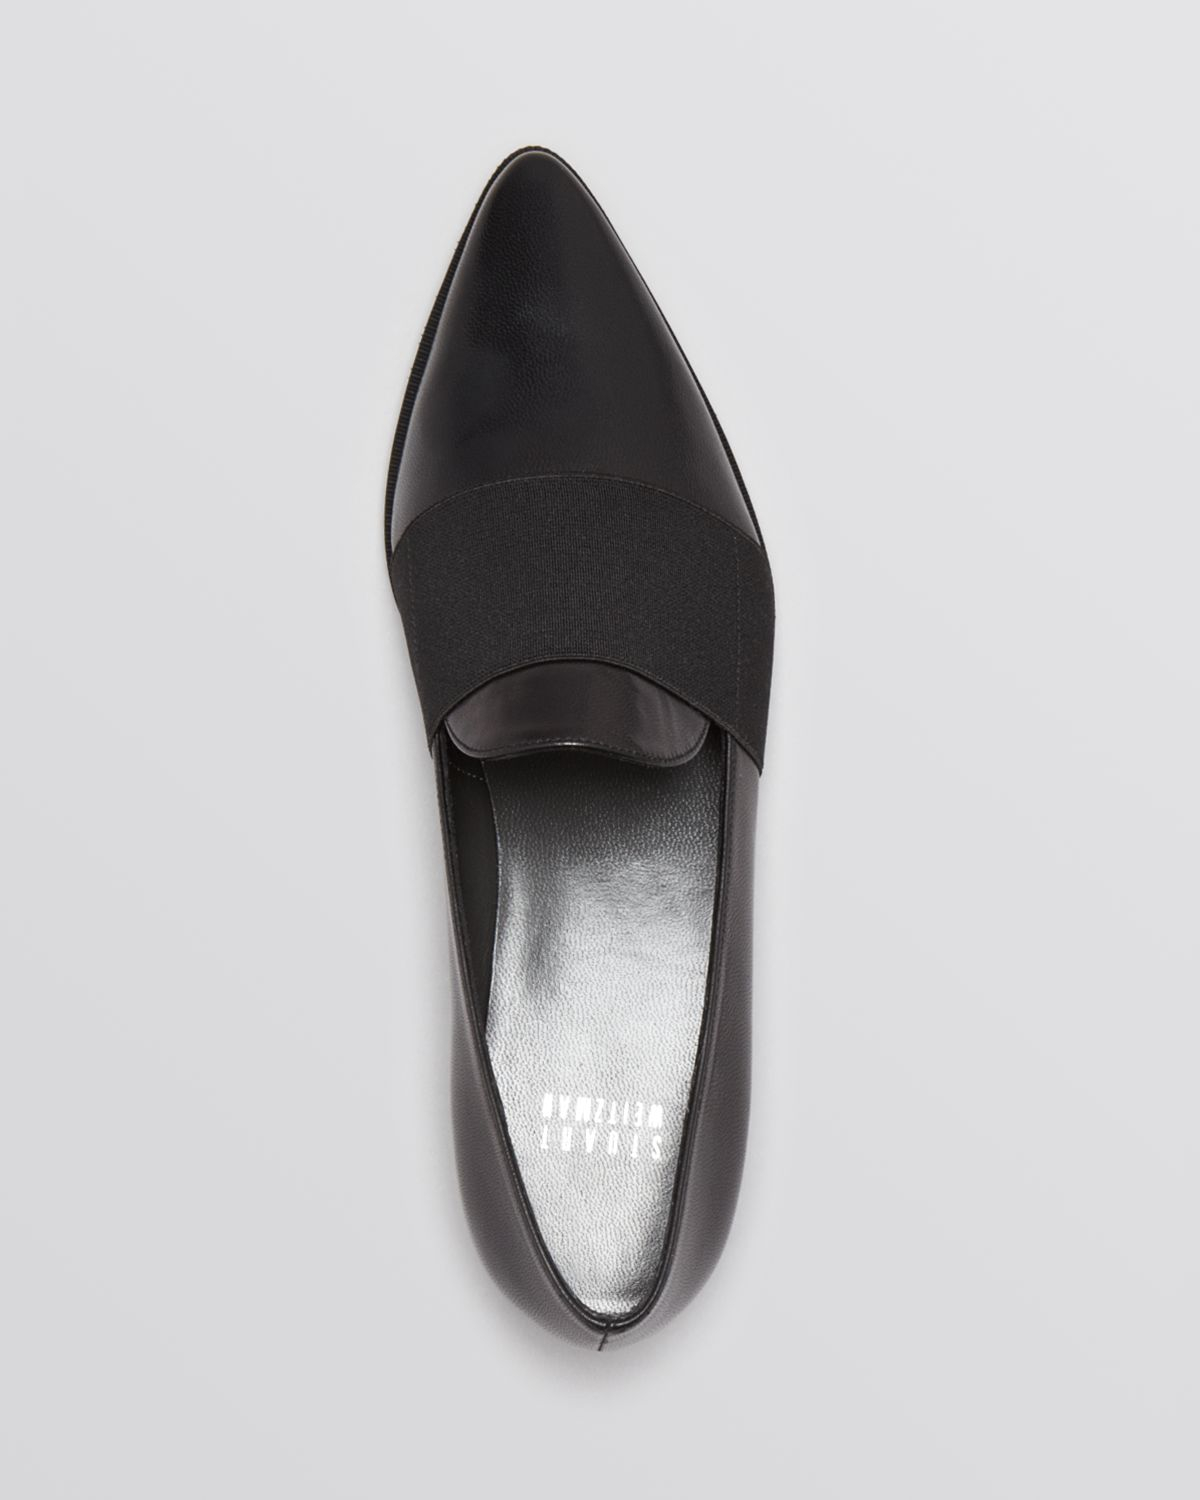 Stuart Weitzman Pointed-Toe Tassel Loafers cheap footlocker finishline free shipping choice outlet store cheap online AqeAjE